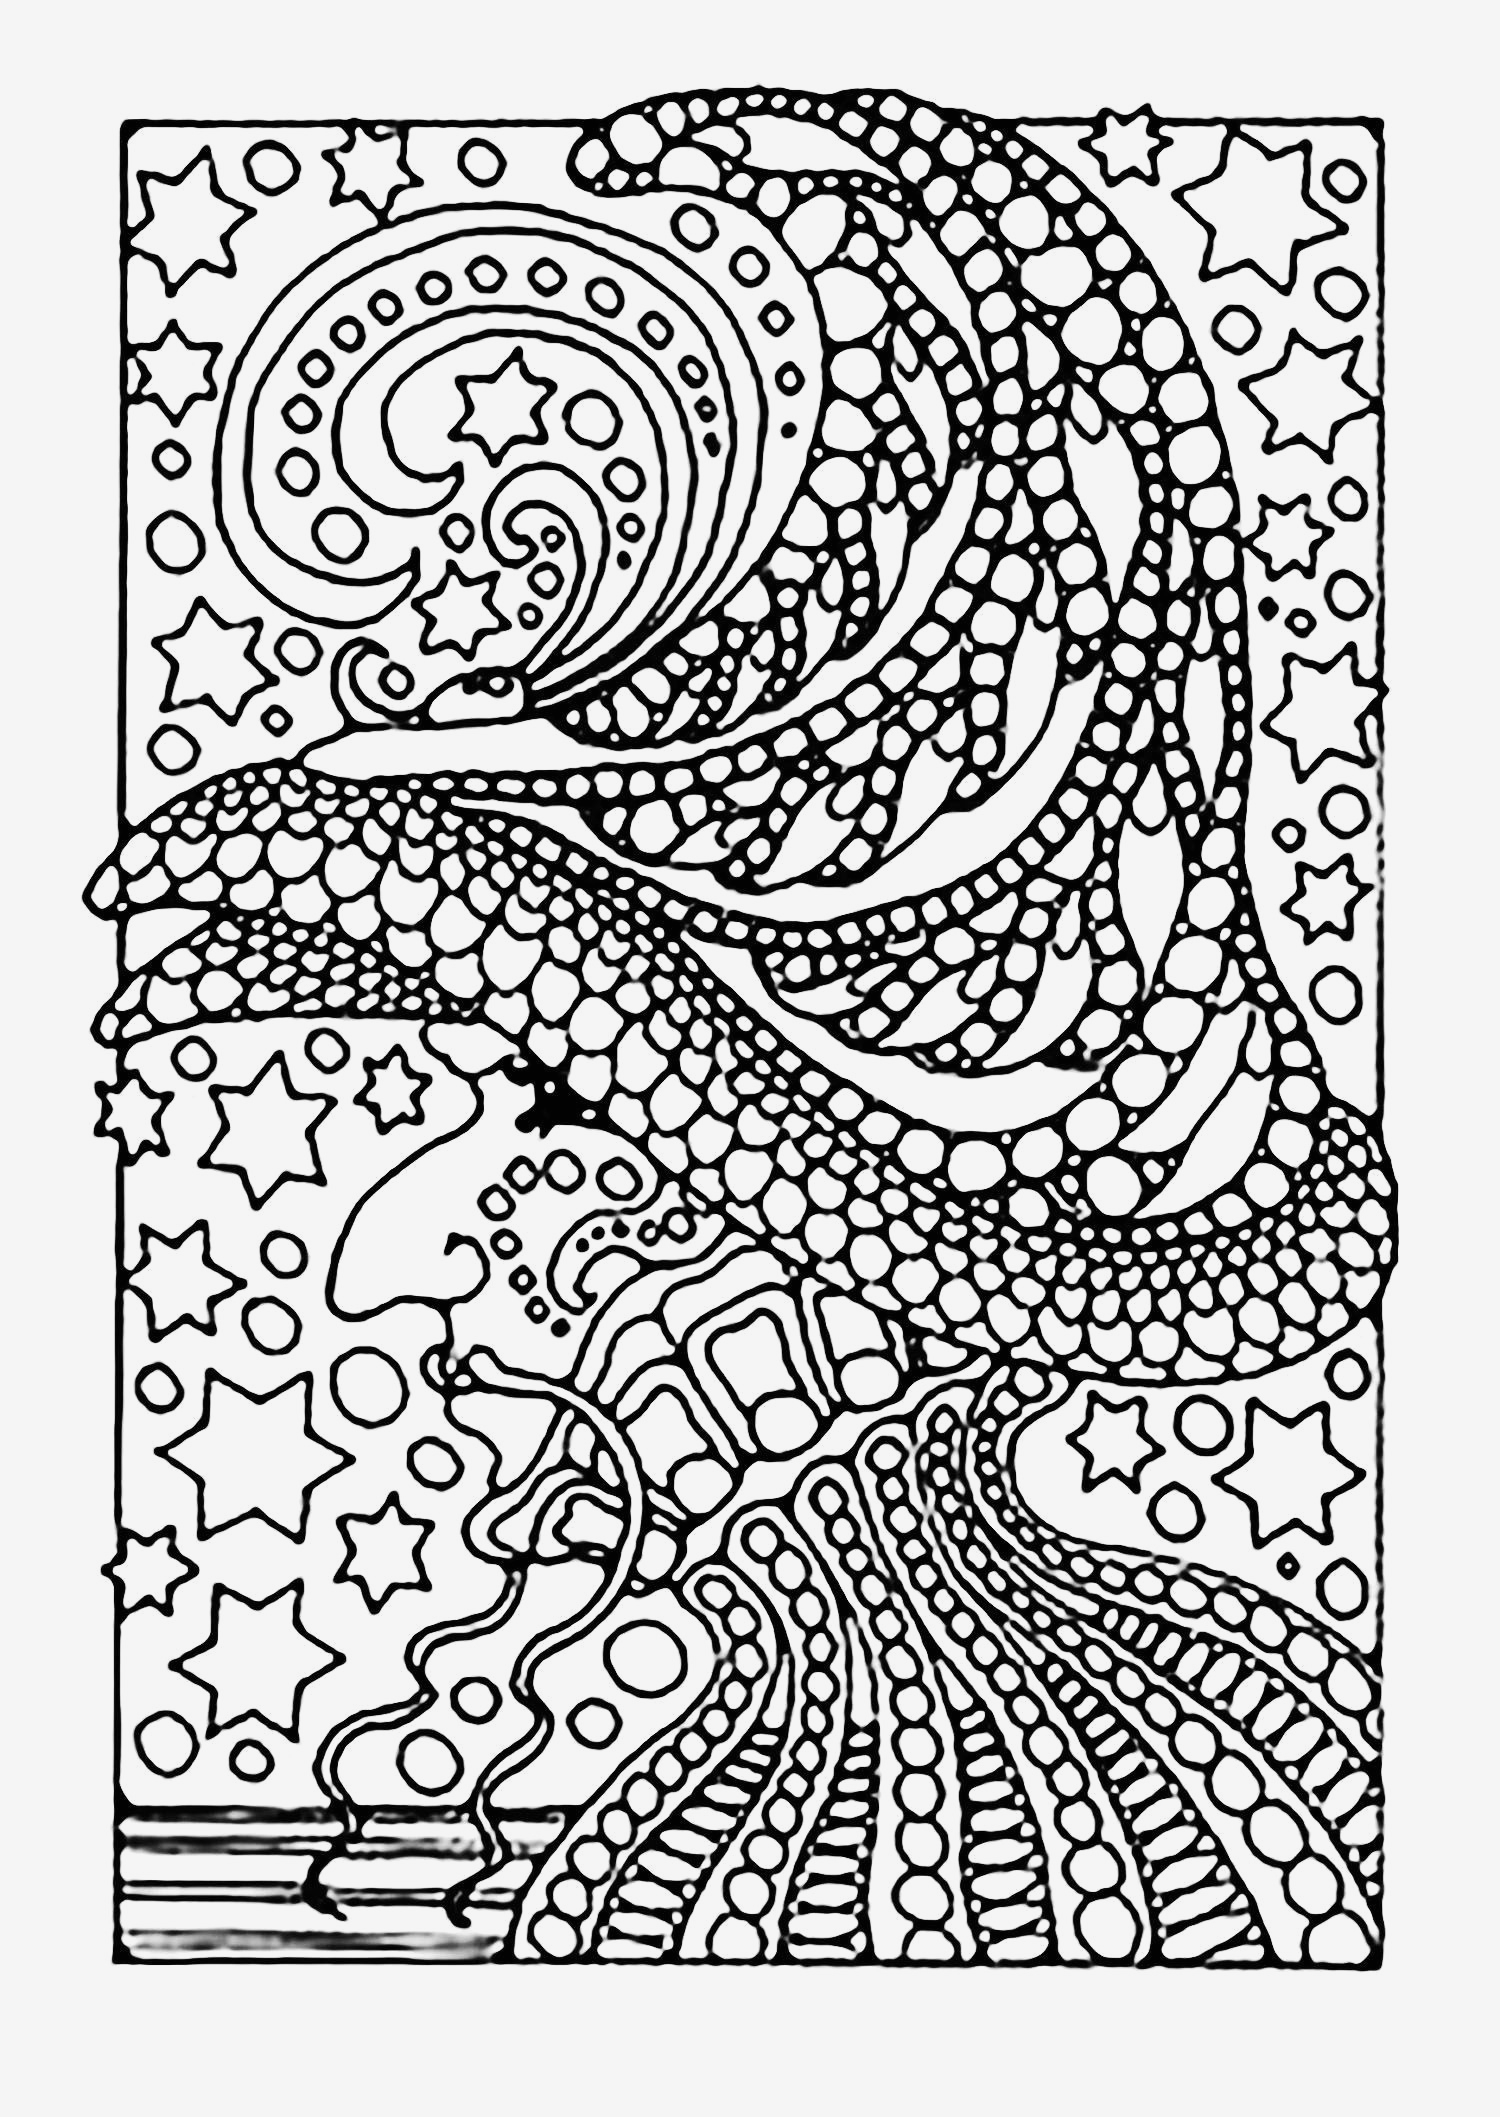 free number coloring pages Download-Flame Coloring Page Free Printable Coloring Pags Best Everything Pages Lovely Page 0d Free Image 8-t